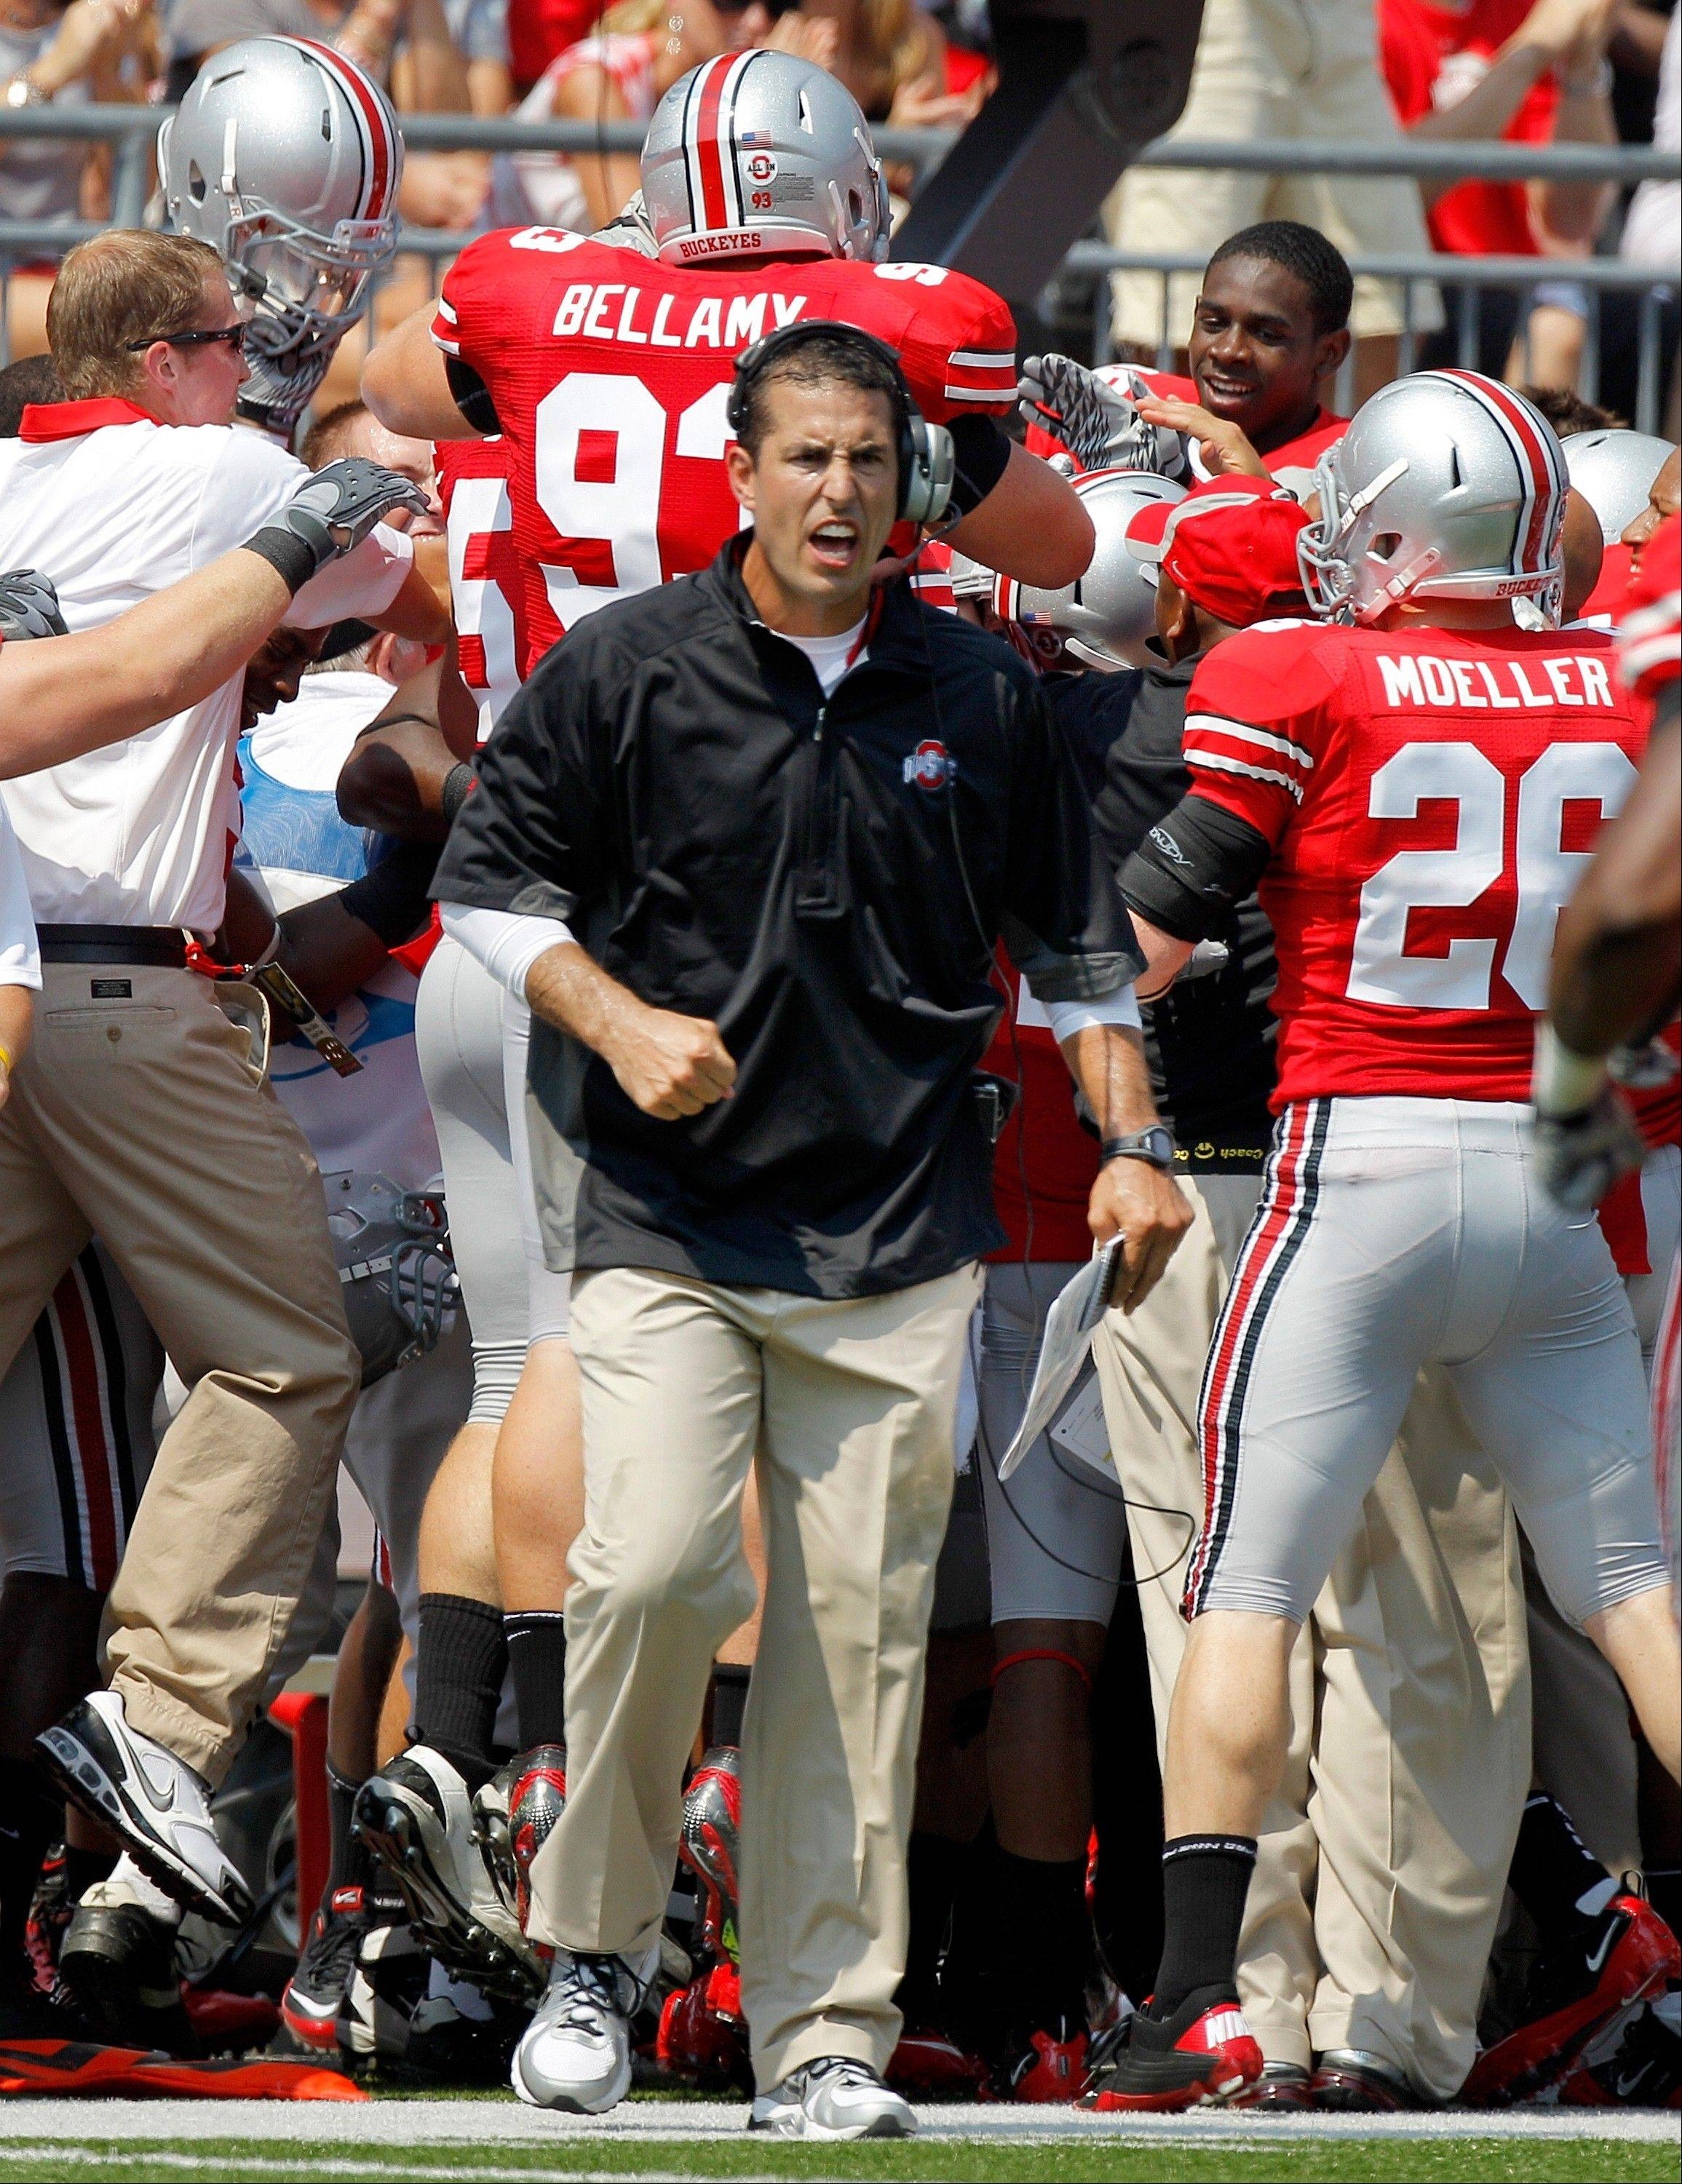 Ohio State head coach Luke Fickell said on Tuesday that four suspended players have been reinstated.